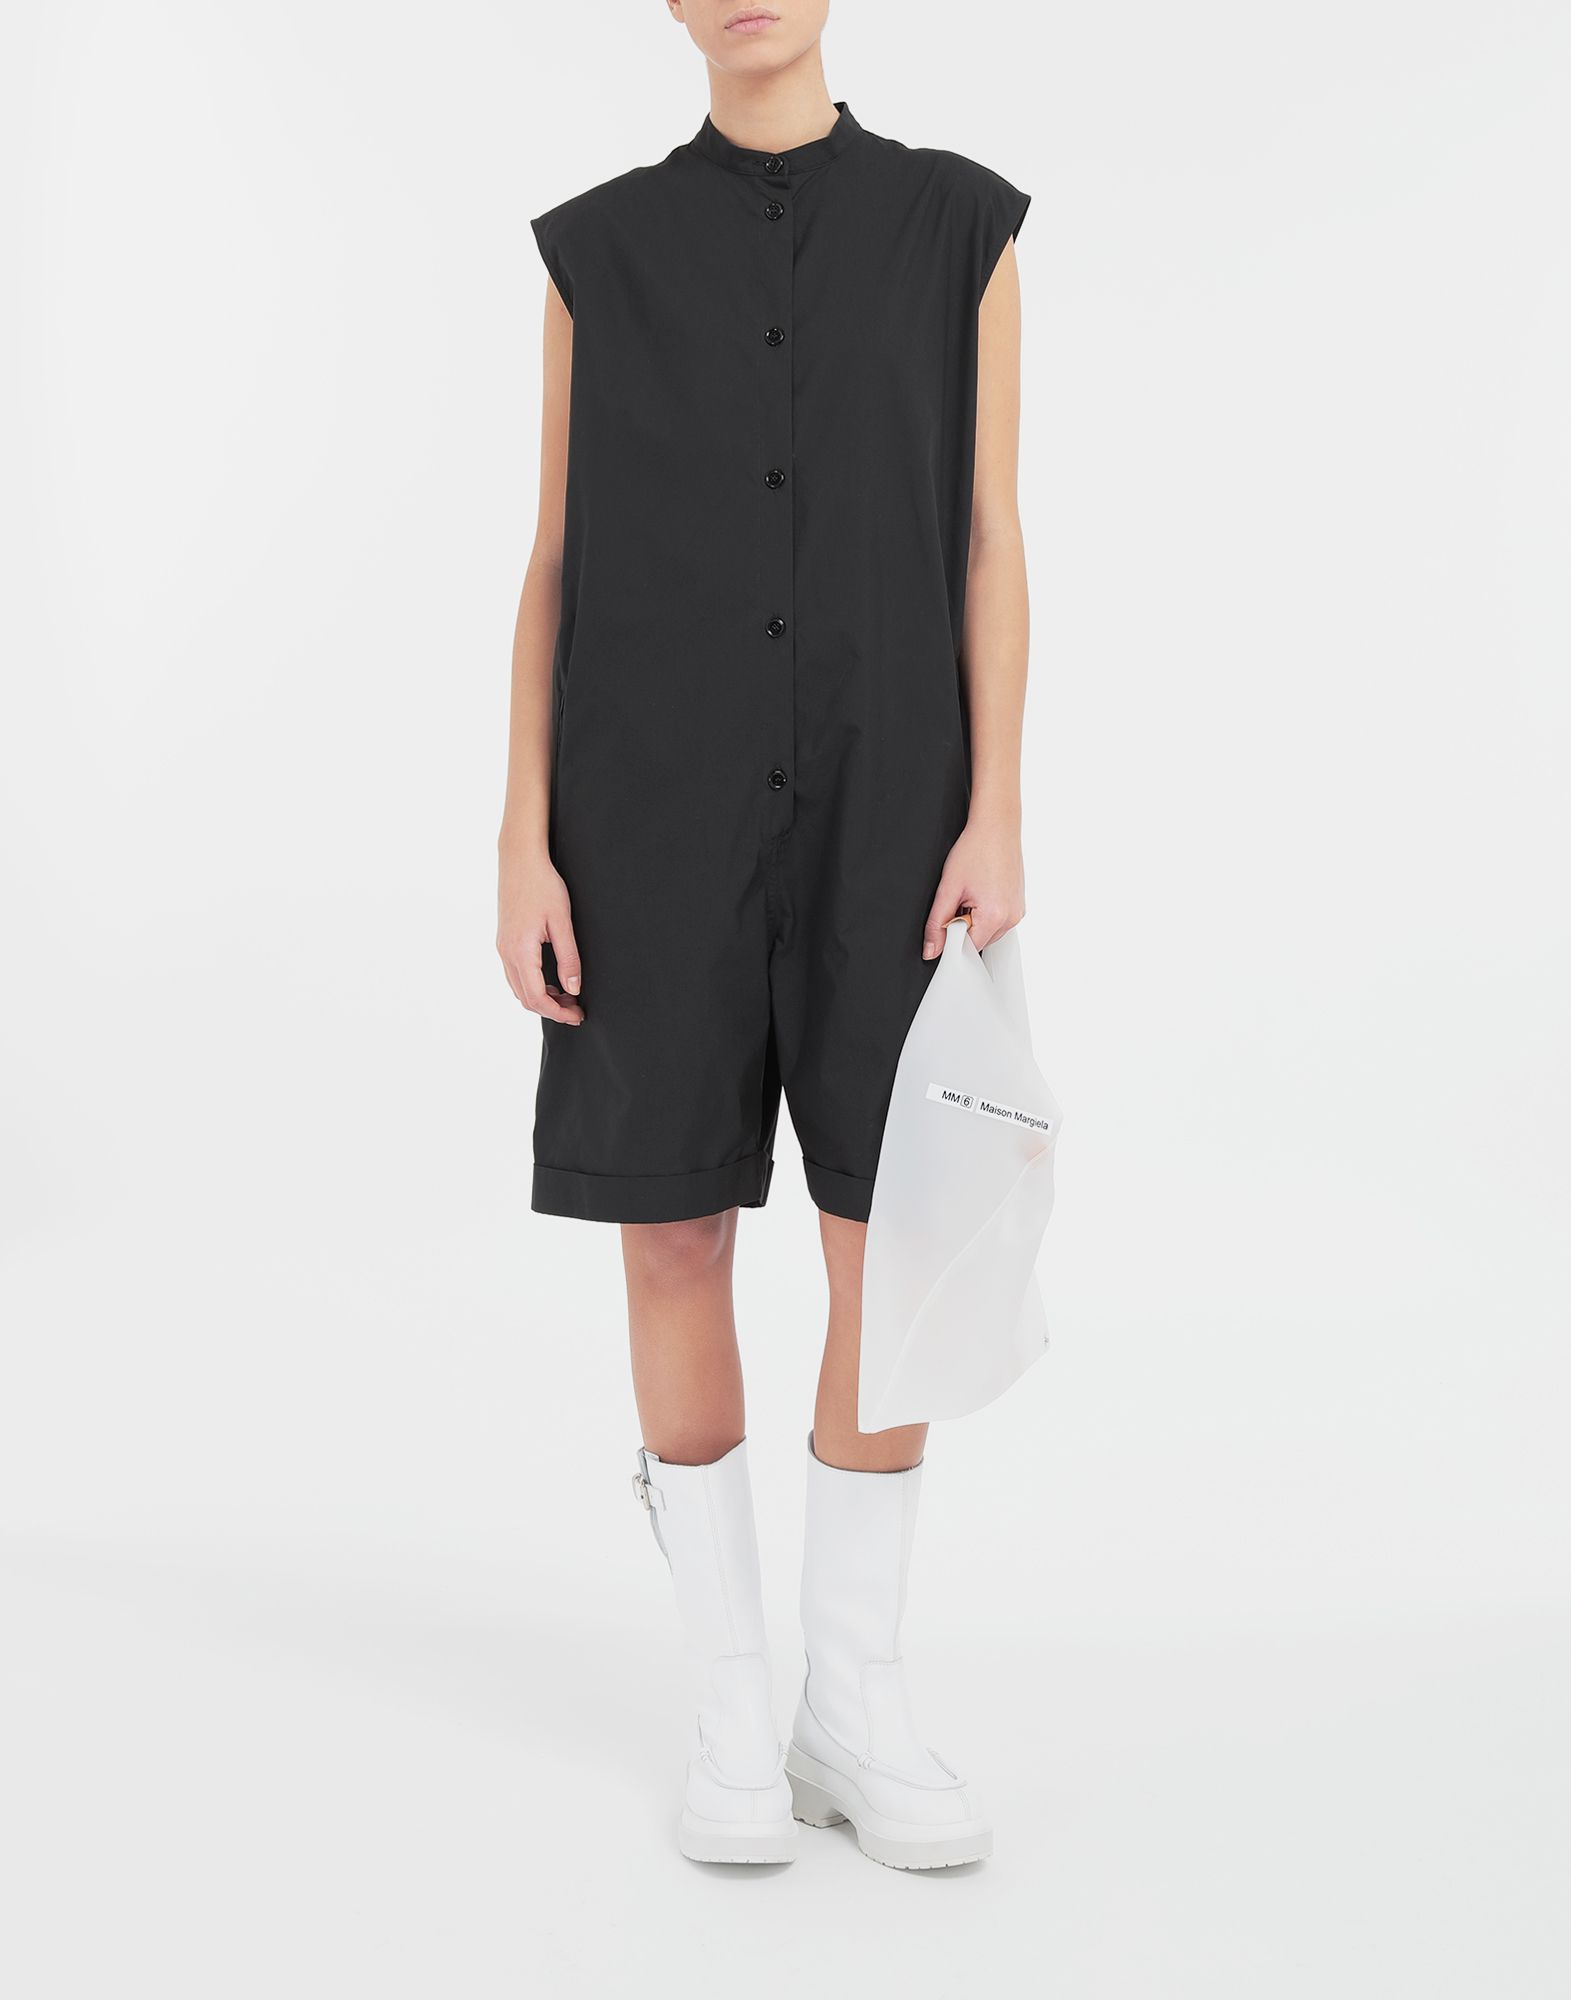 MM6 MAISON MARGIELA Casual cotton-blend playsuit Short dungaree Woman d